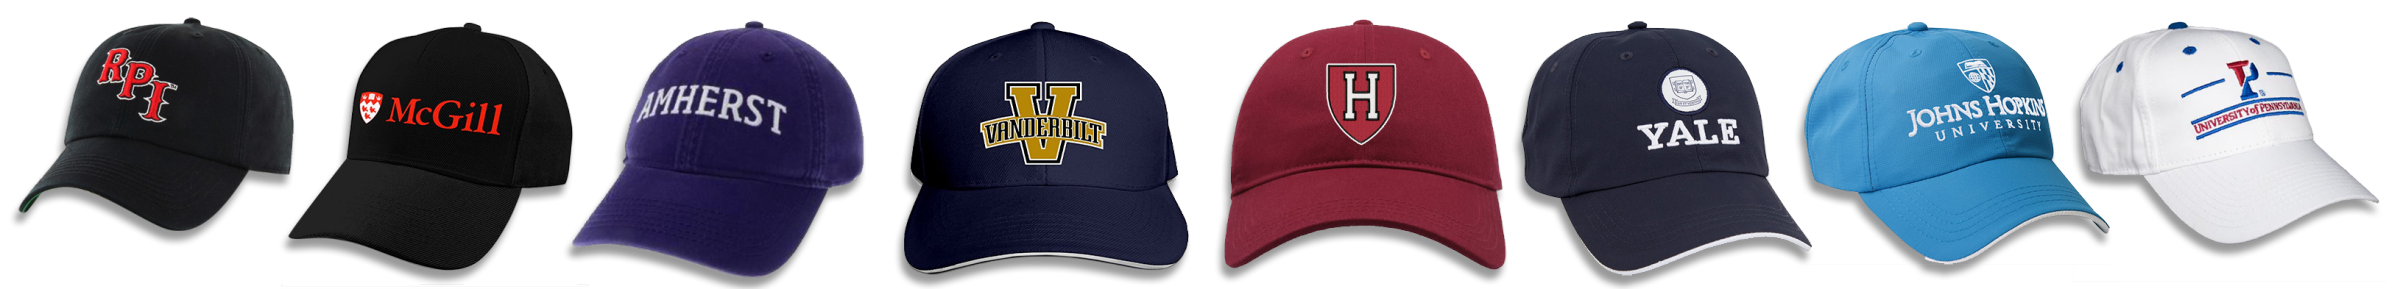 Hats from the colleges where our graduating class is heading.